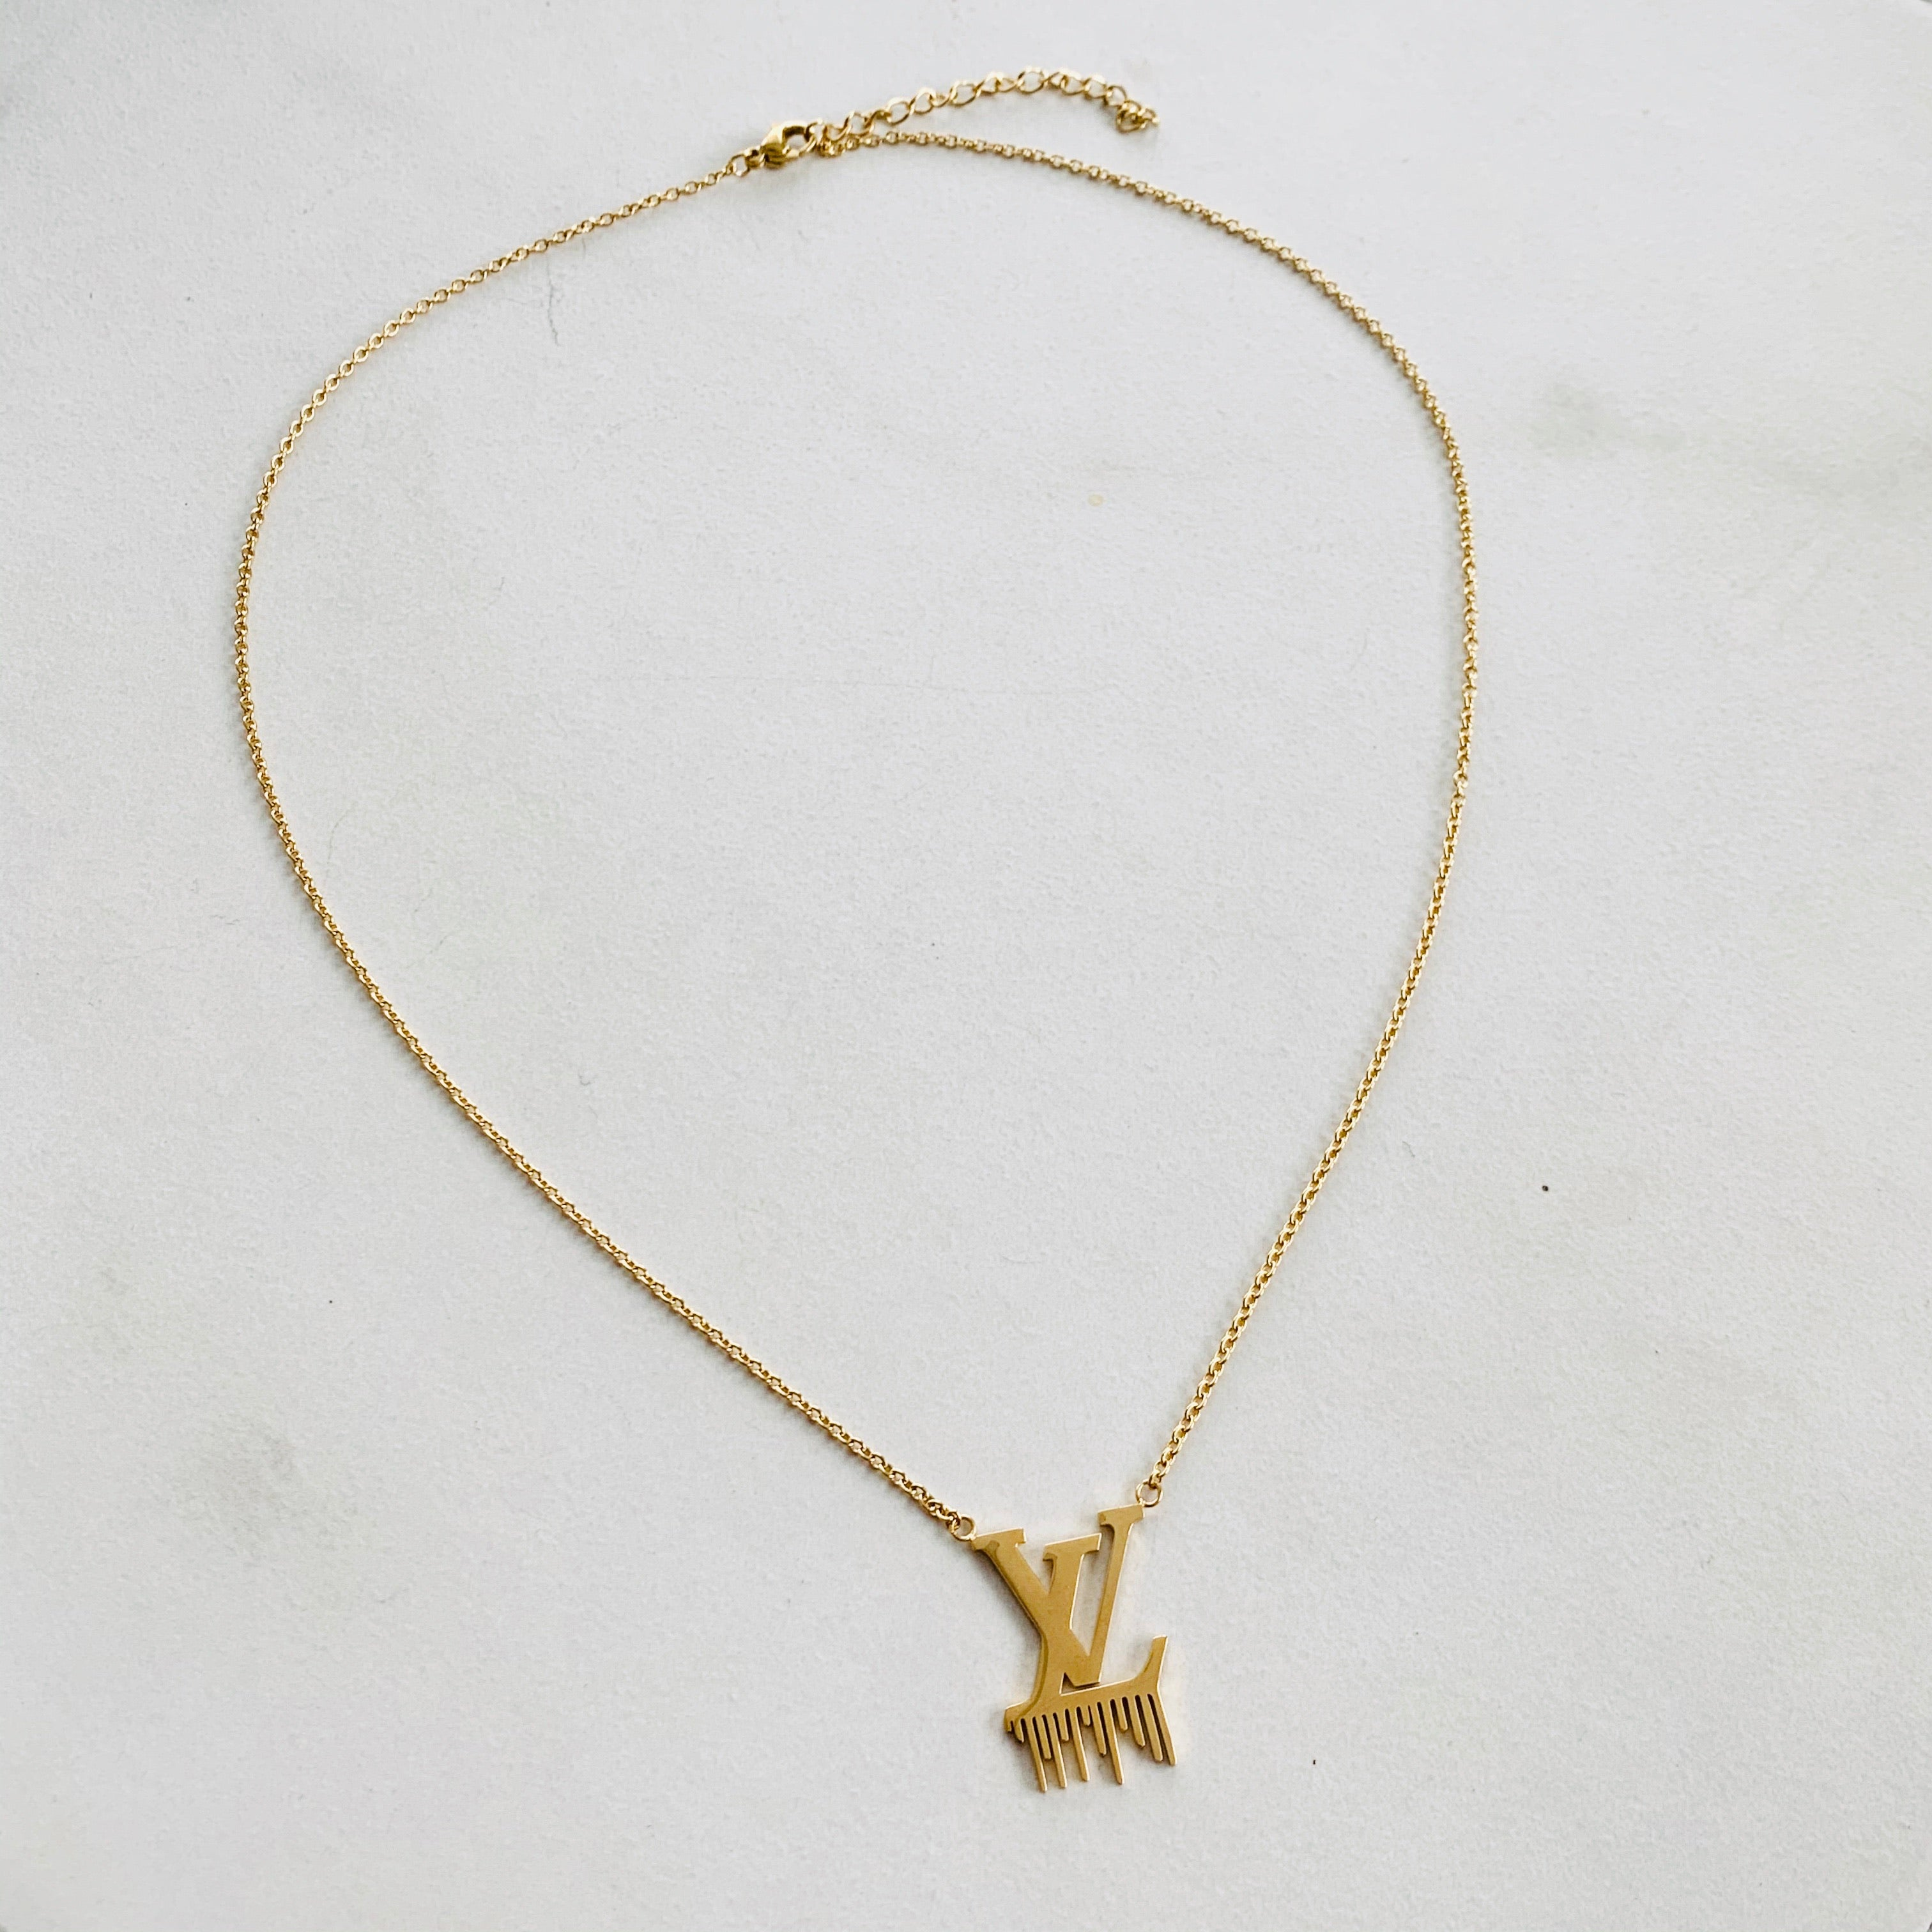 LV Gold Drip Pendant Necklace